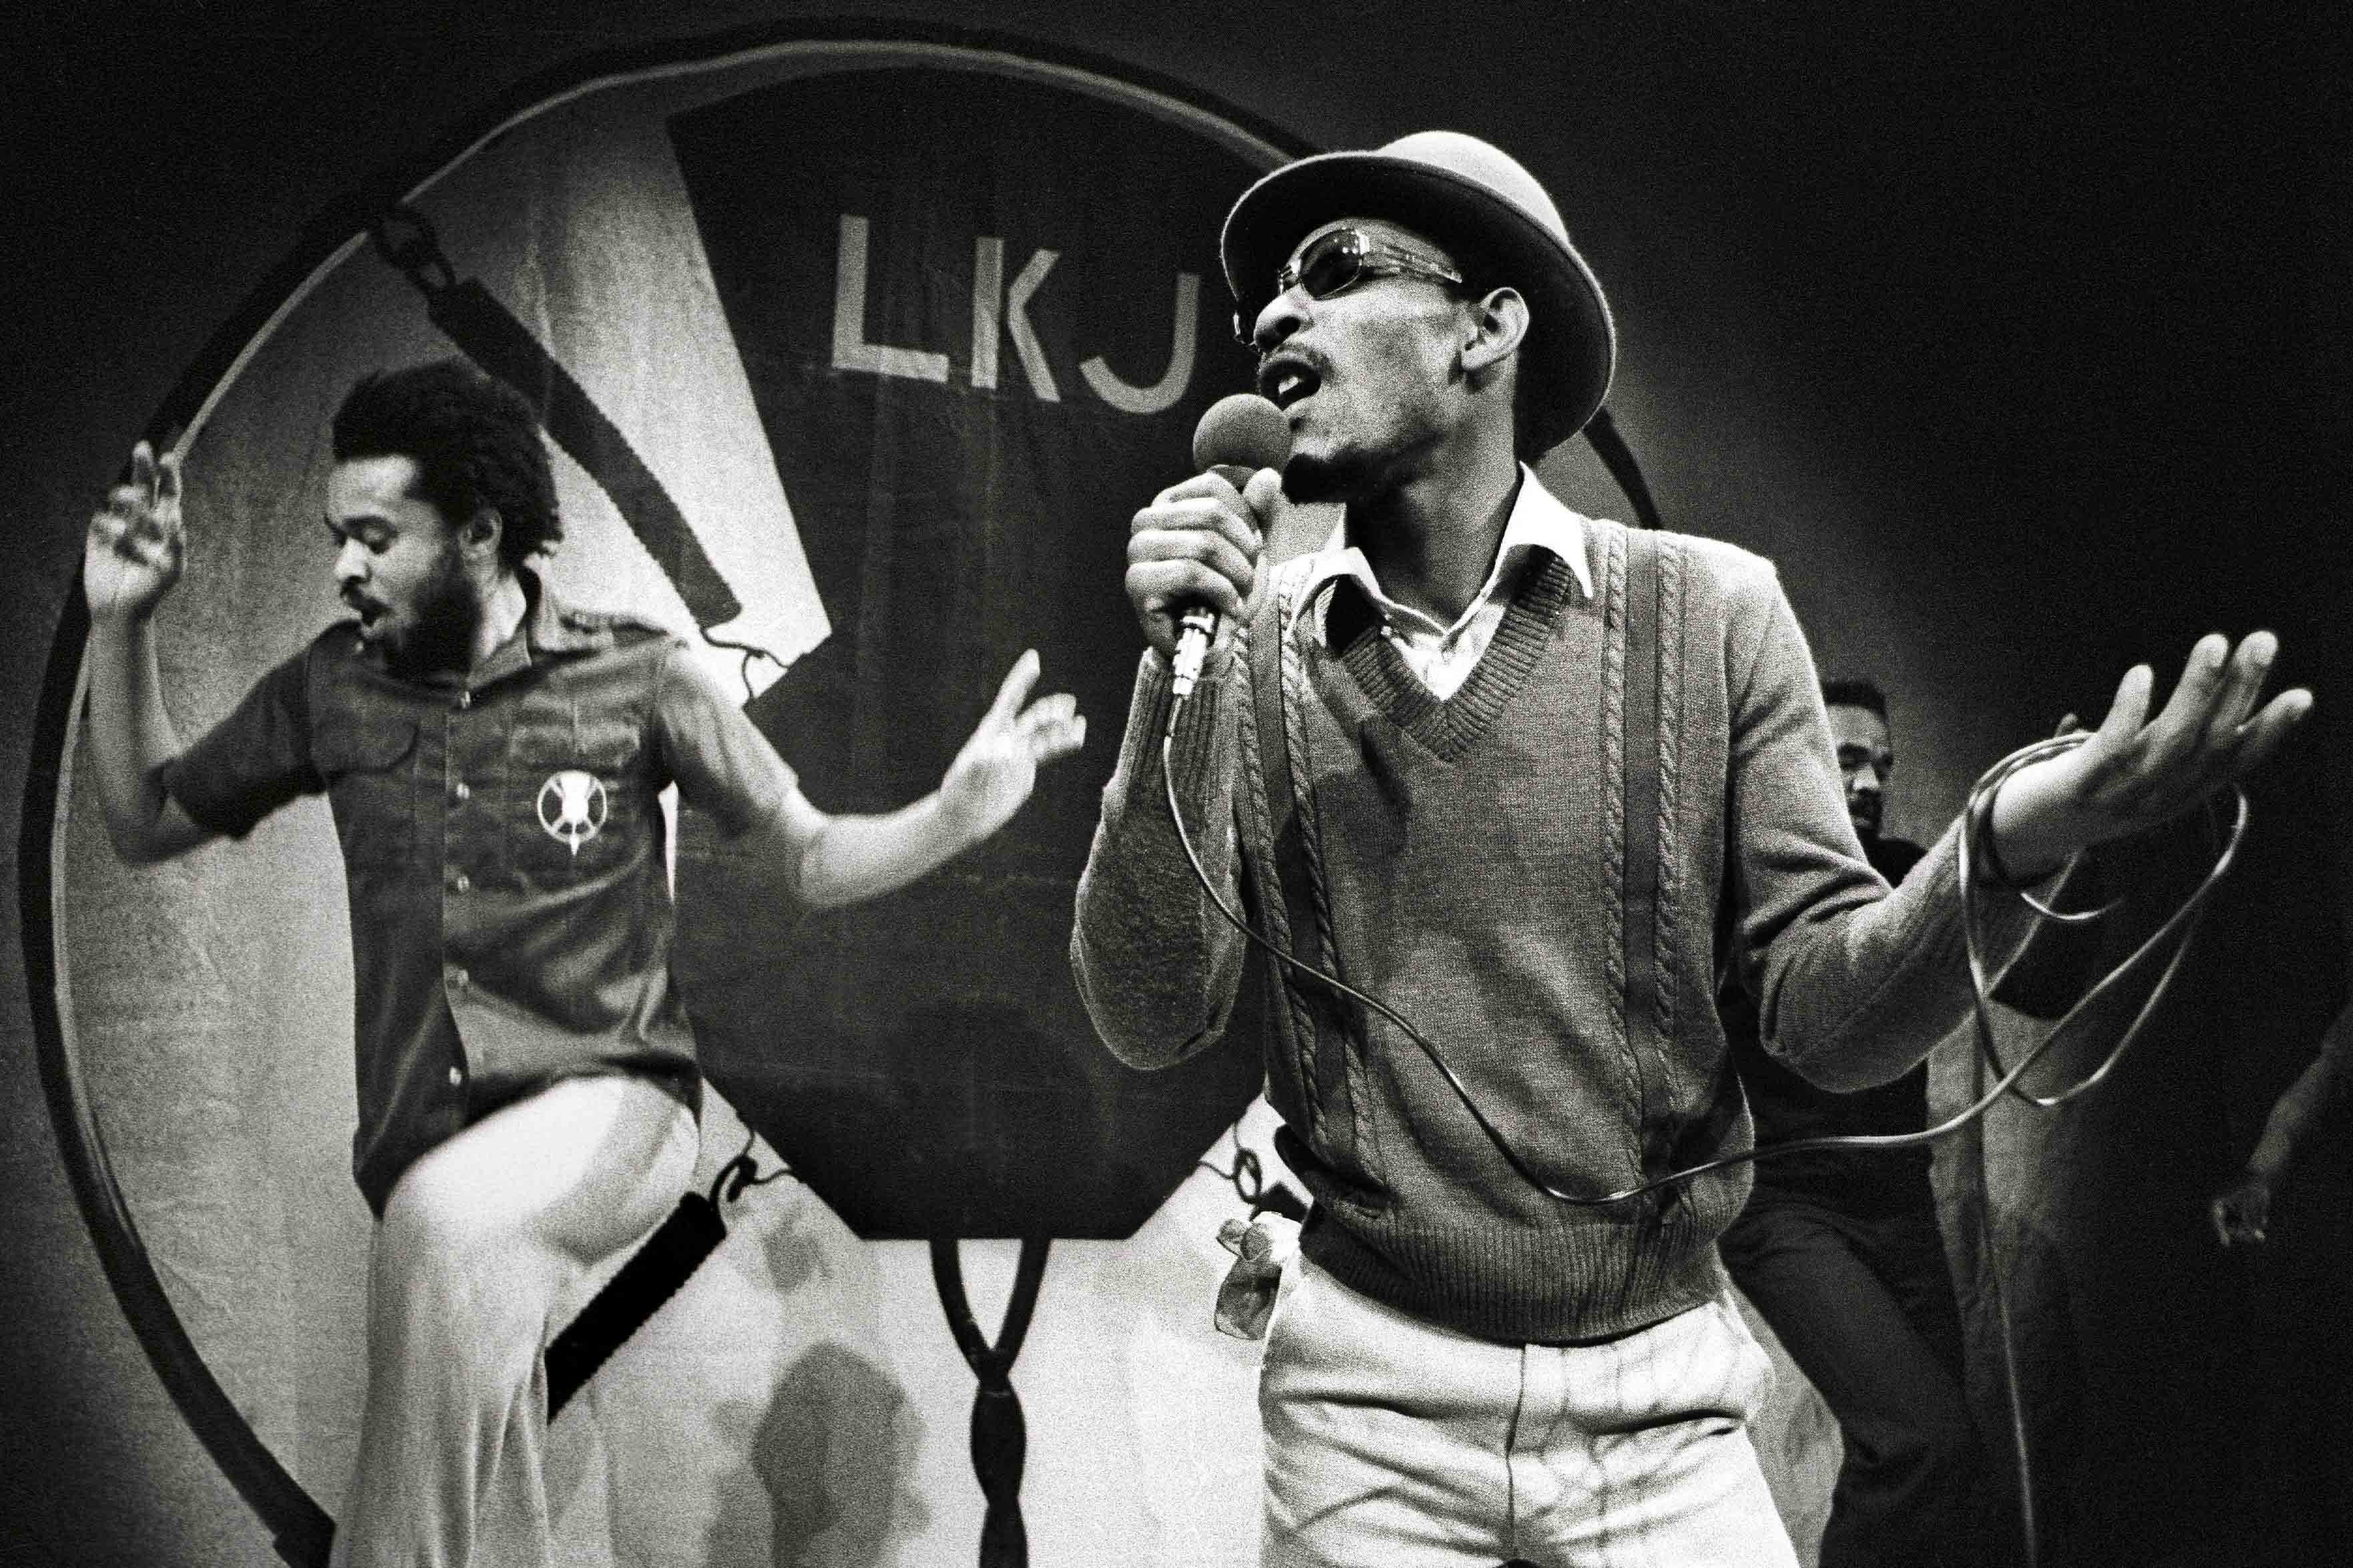 10 January 1980: Linton Kwesi Johnson (right) performing on stage at the Paradiso in Amsterdam, The Netherlands. (Photograph by Rob Verhorst/Redferns)